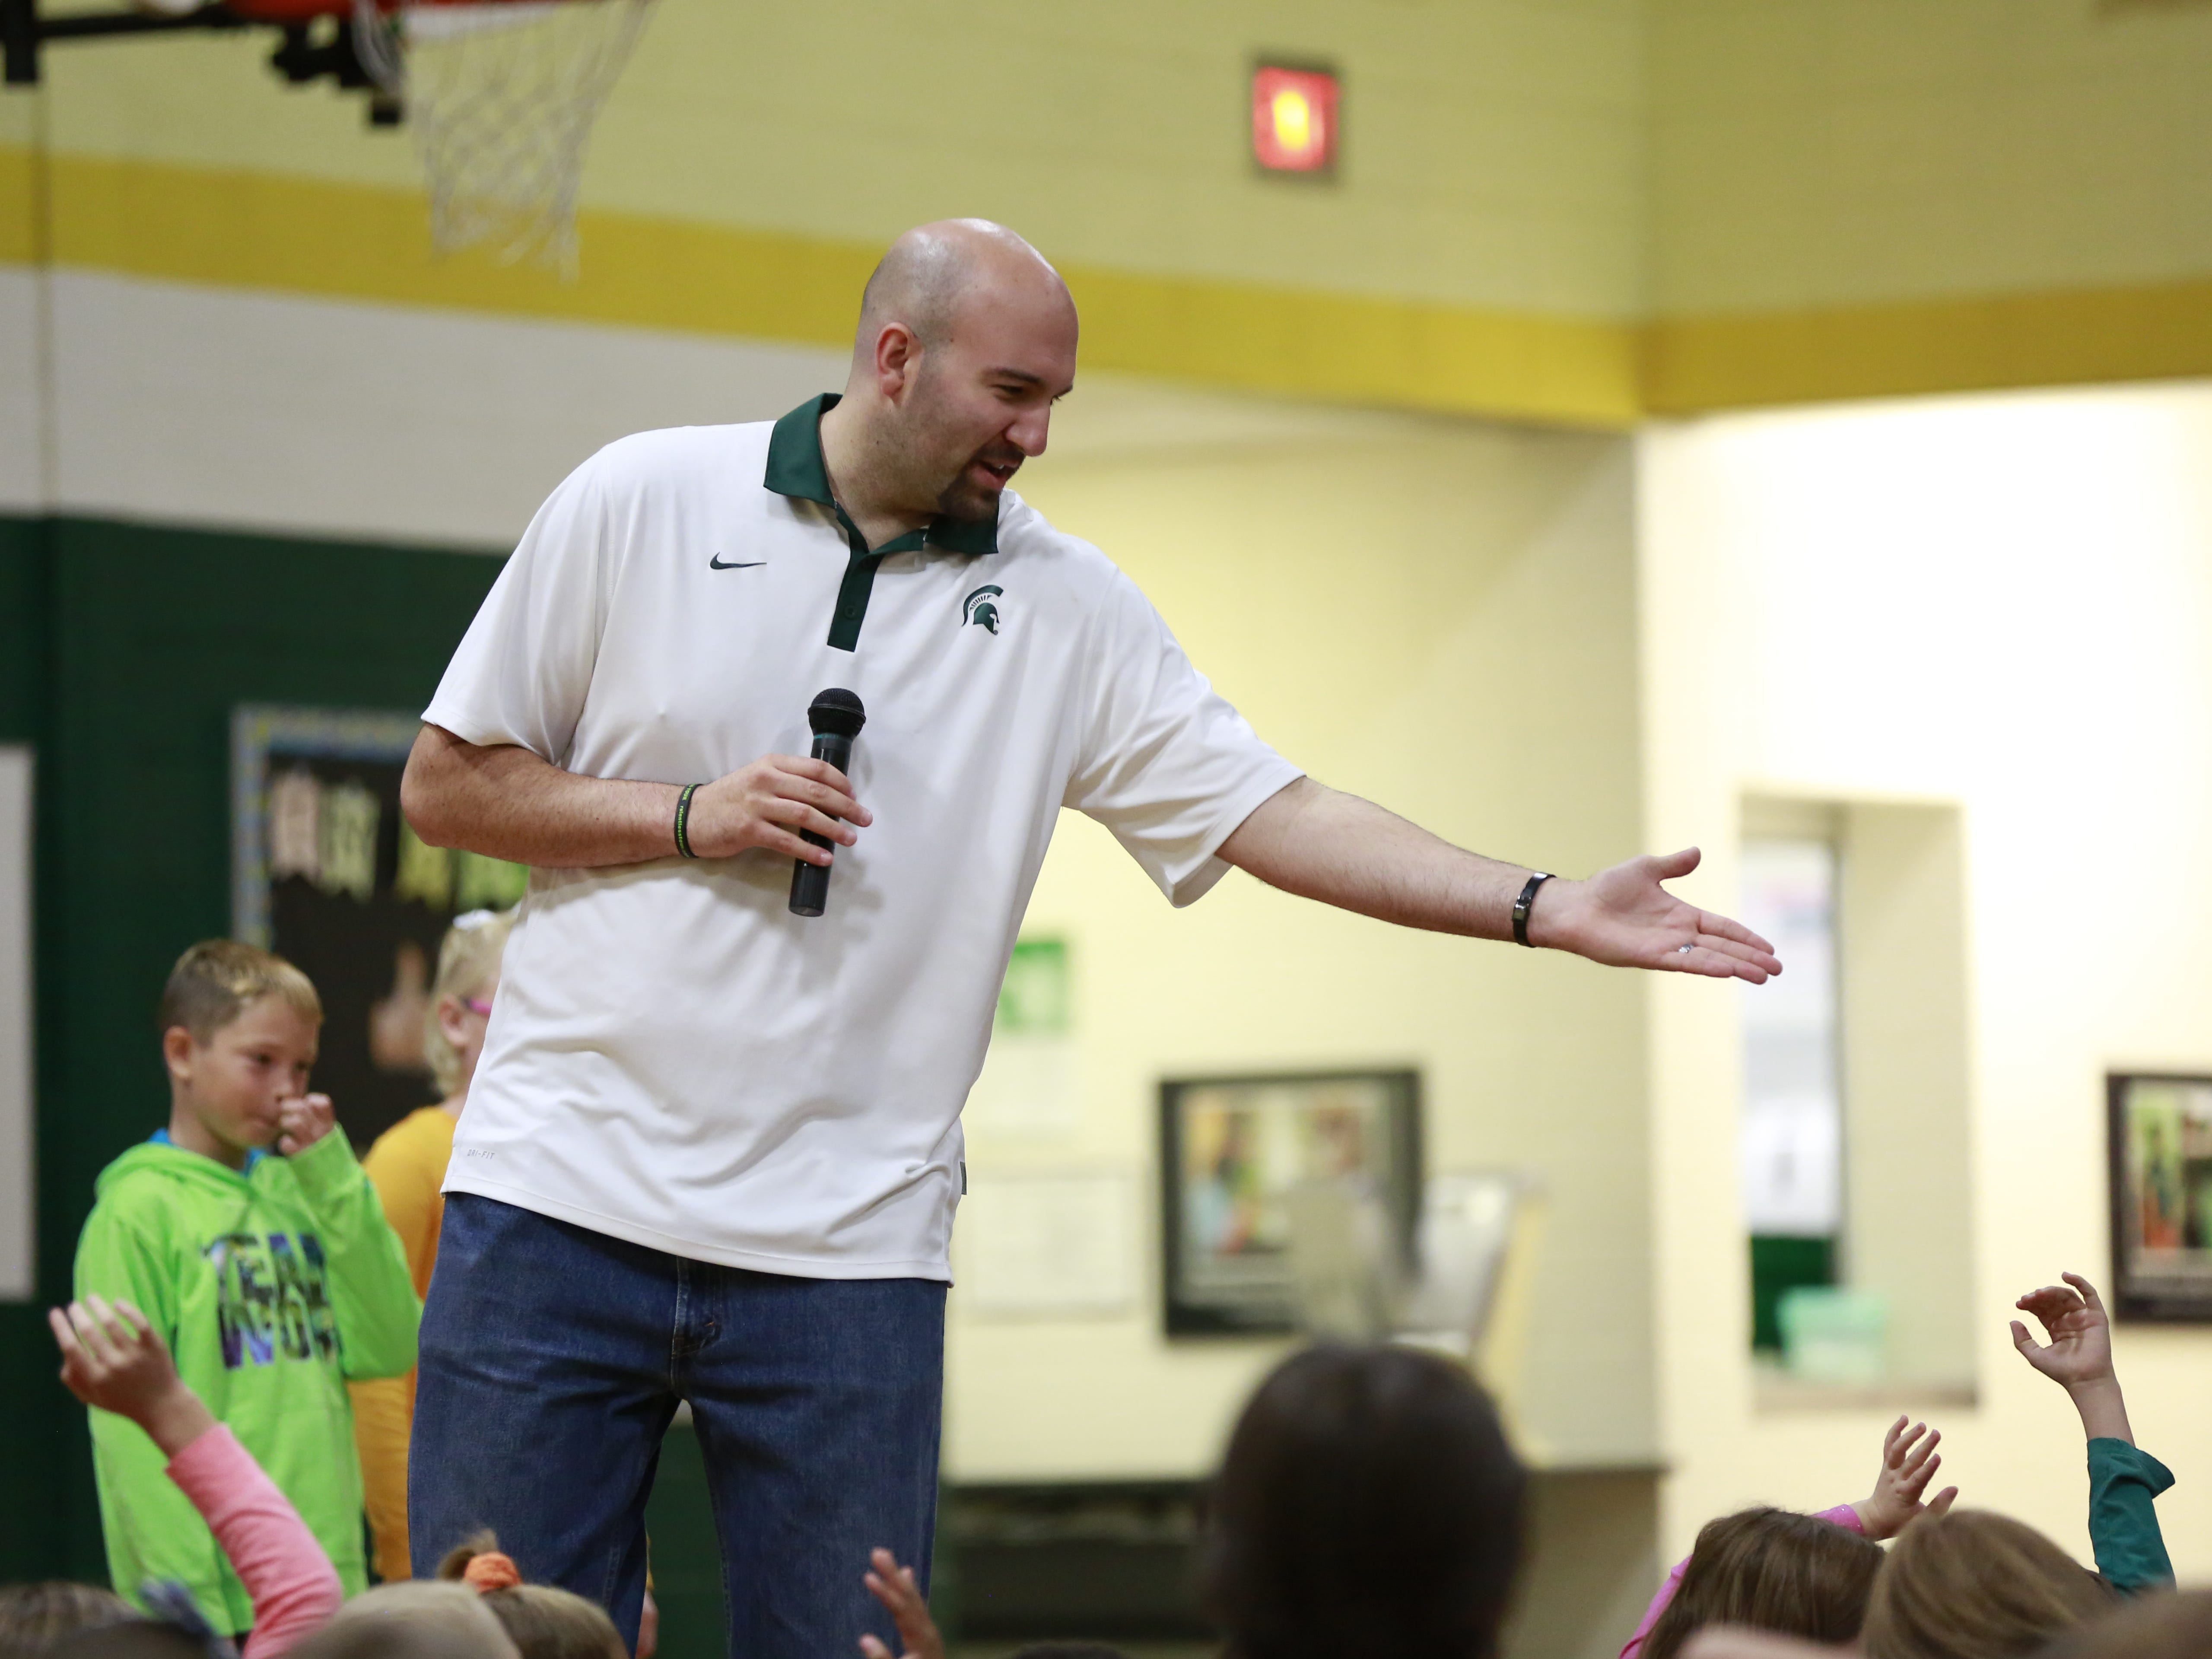 Students get voluntarily called by former MSU basketball player Anthony Ianni on Monday, Oct. 15, 2018, during the Anti-Bullying Relentless Tour to Visit Wisconsin at Weston Elementary School in Weston, Wis.